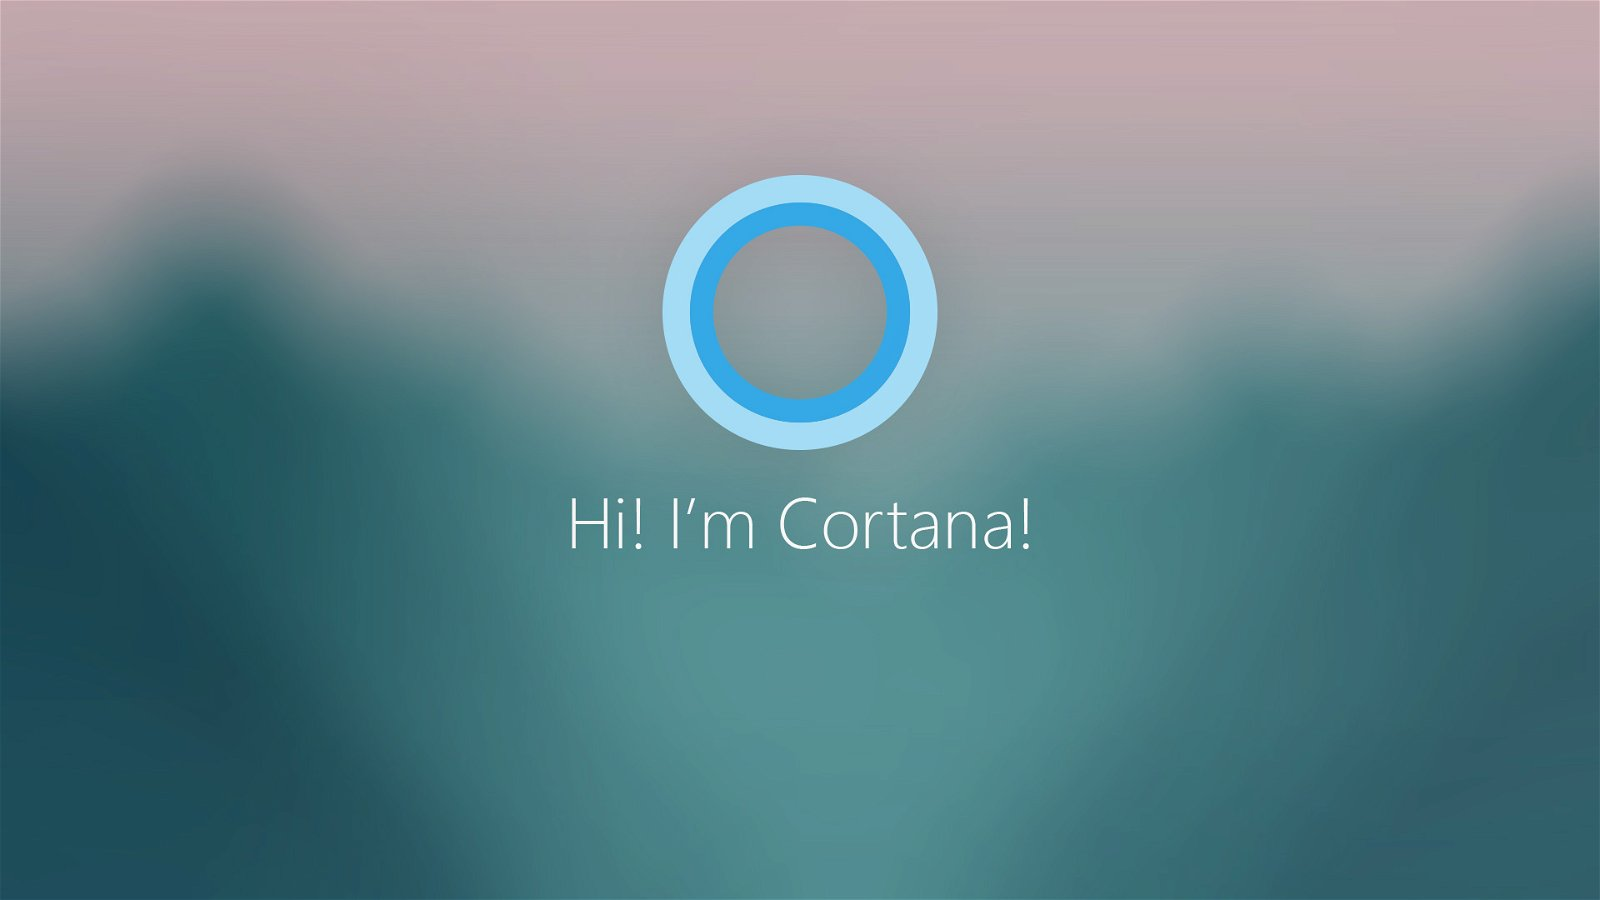 Cortana is Making Her Way to Mobile Outlook